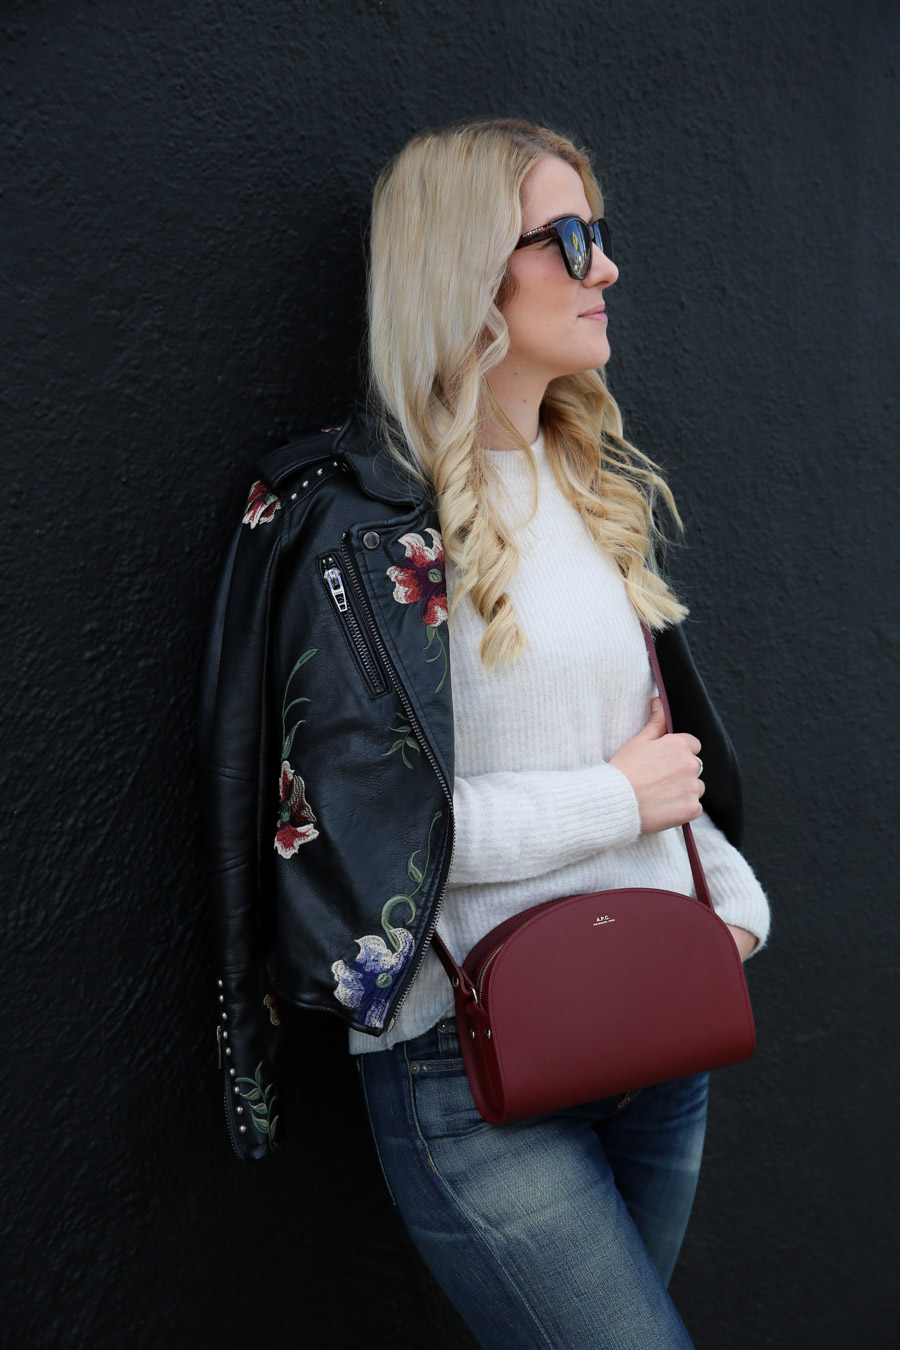 Black Sneakers Outfit for Women with Jeans + Leather Jacket